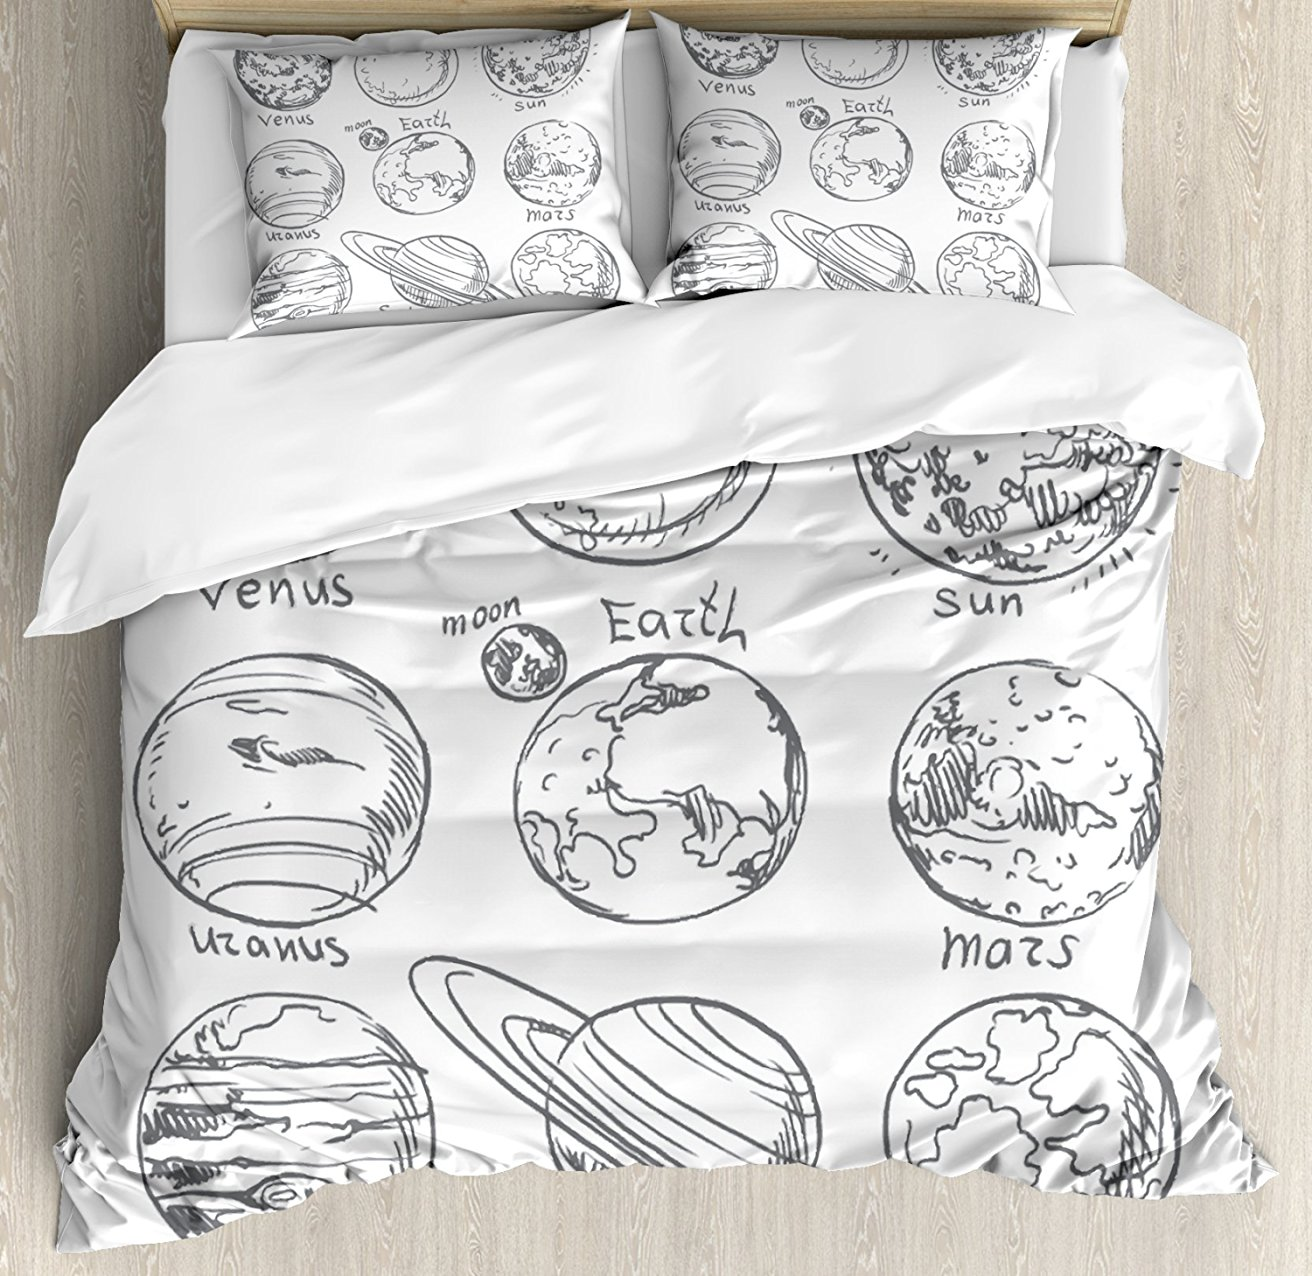 Doodle Duvet Cover Set Planets of Solar System Sun Mercury Earth Moon Mars Neptune Saturn Jupiter Science, 4 Piece Bedding Set